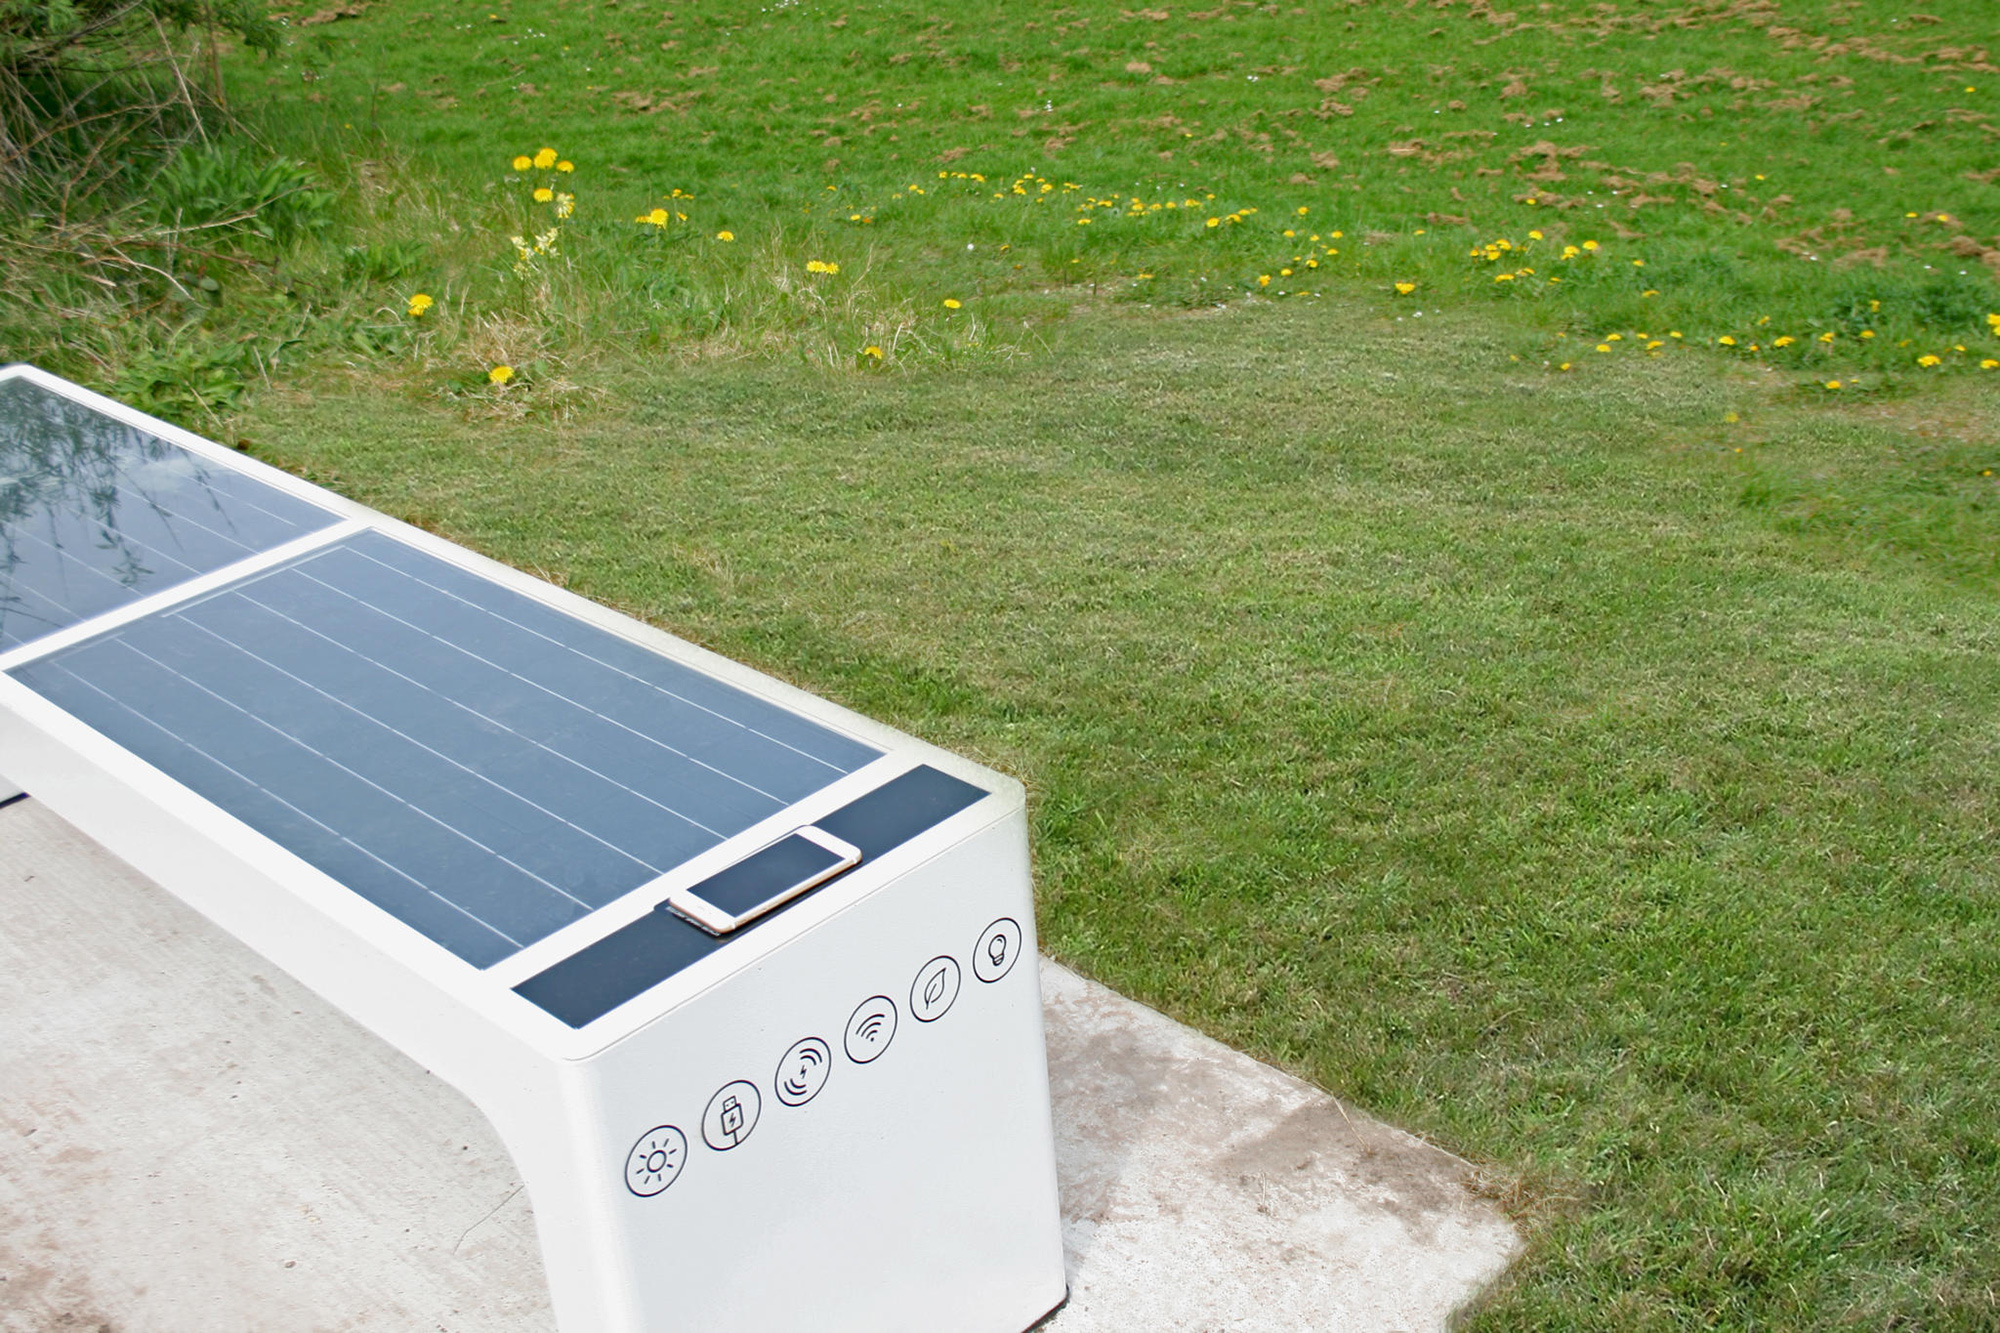 A UK exclusive – All Urban install first smart benches in rural Wales